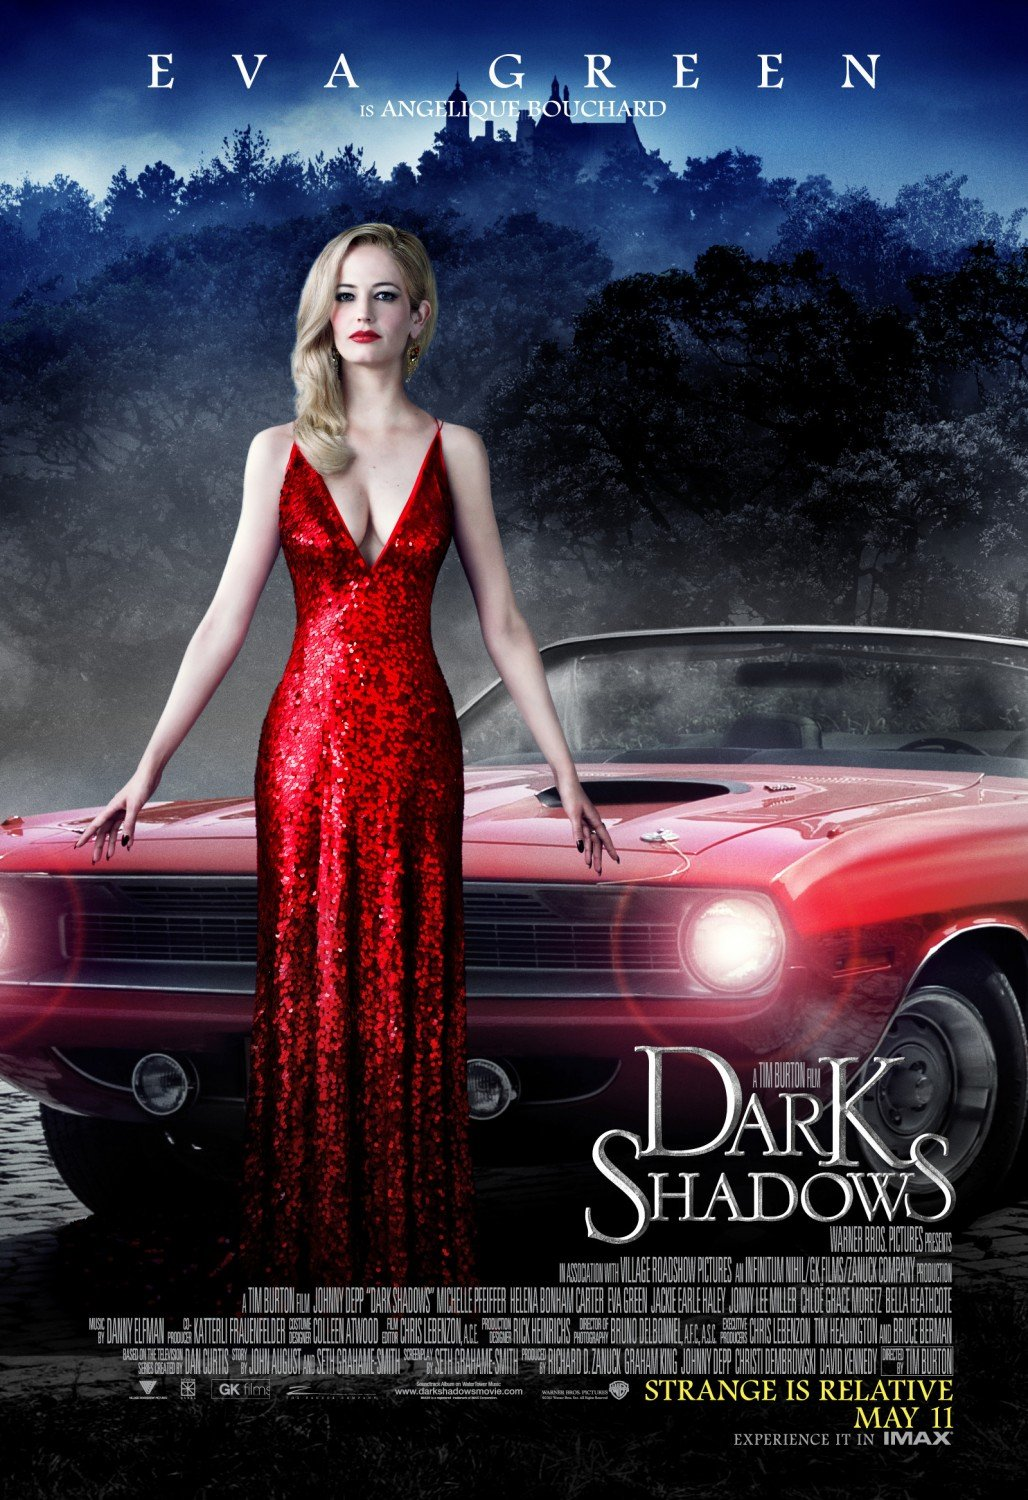 Dark Shadows 2012 Movie HD Wallpapers and Posters Download 1028x1500